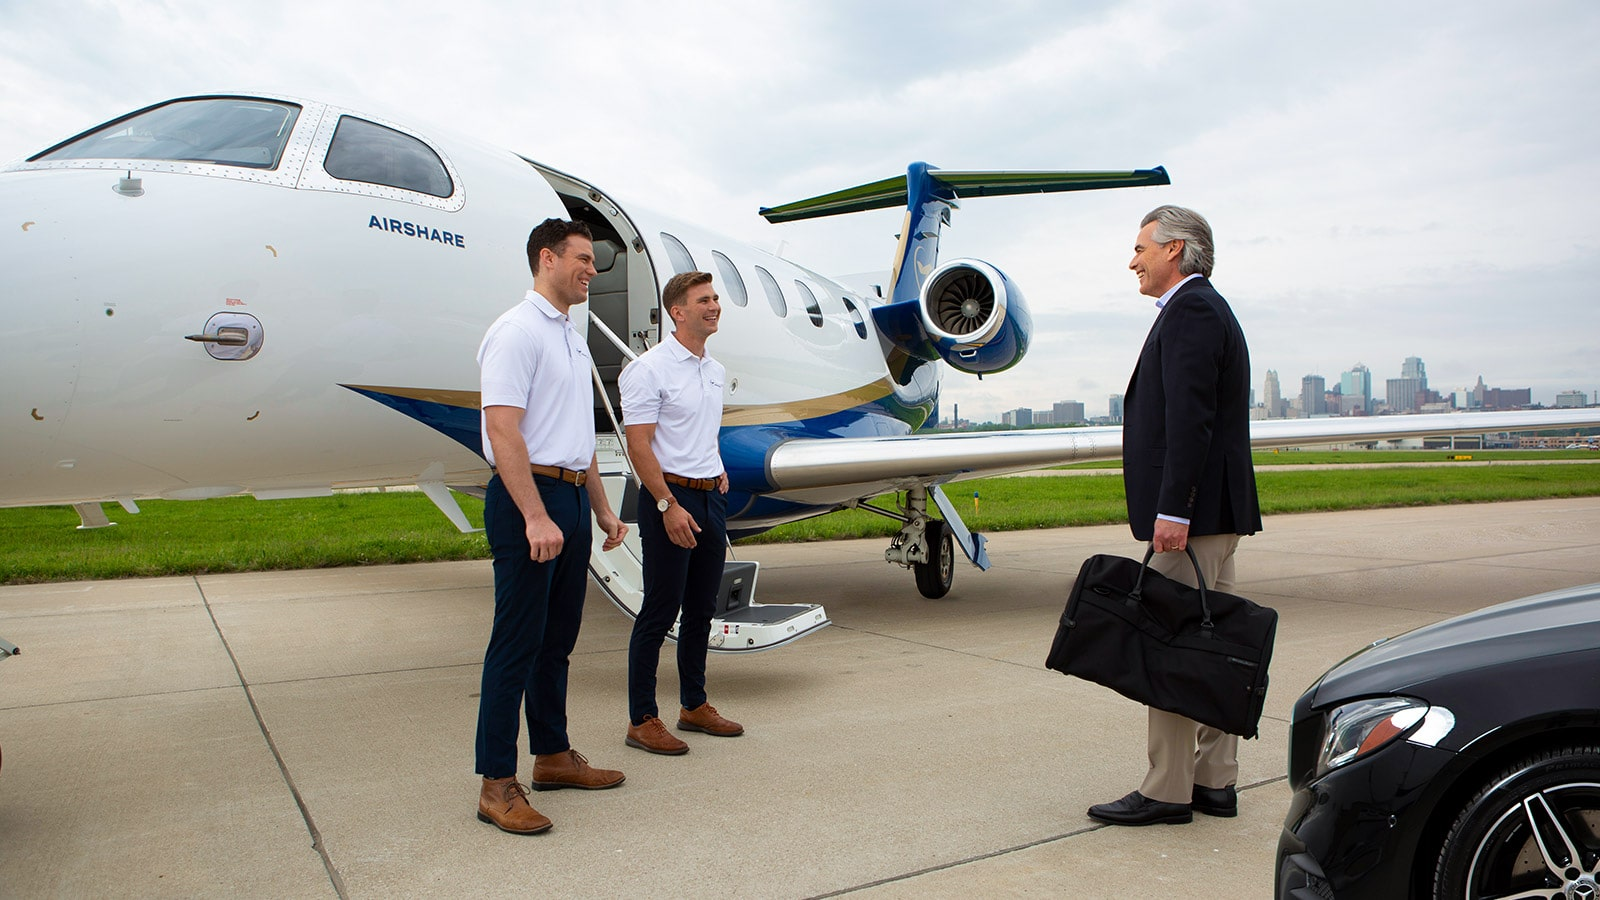 Two Airshare pilots greeting a customer as he enters the aircraft